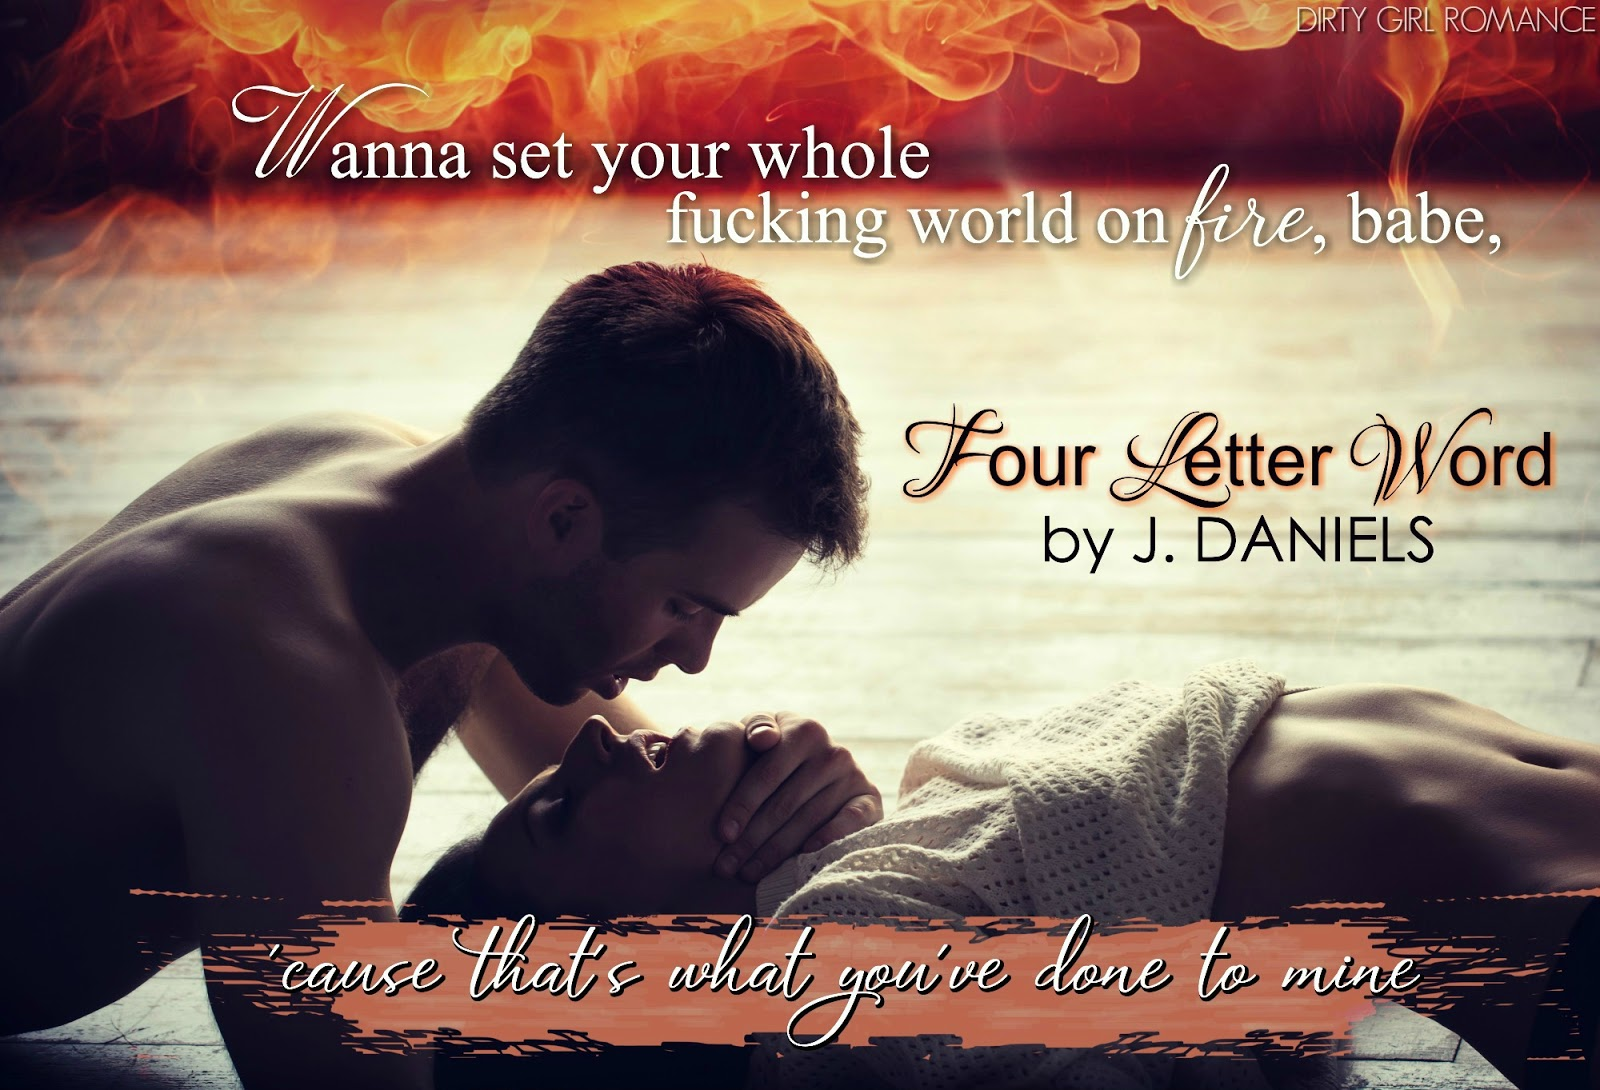 Reads All The Books Four Letter Word by J Daniels Cover Reveal – Words of Romance for Romantic Love Letters